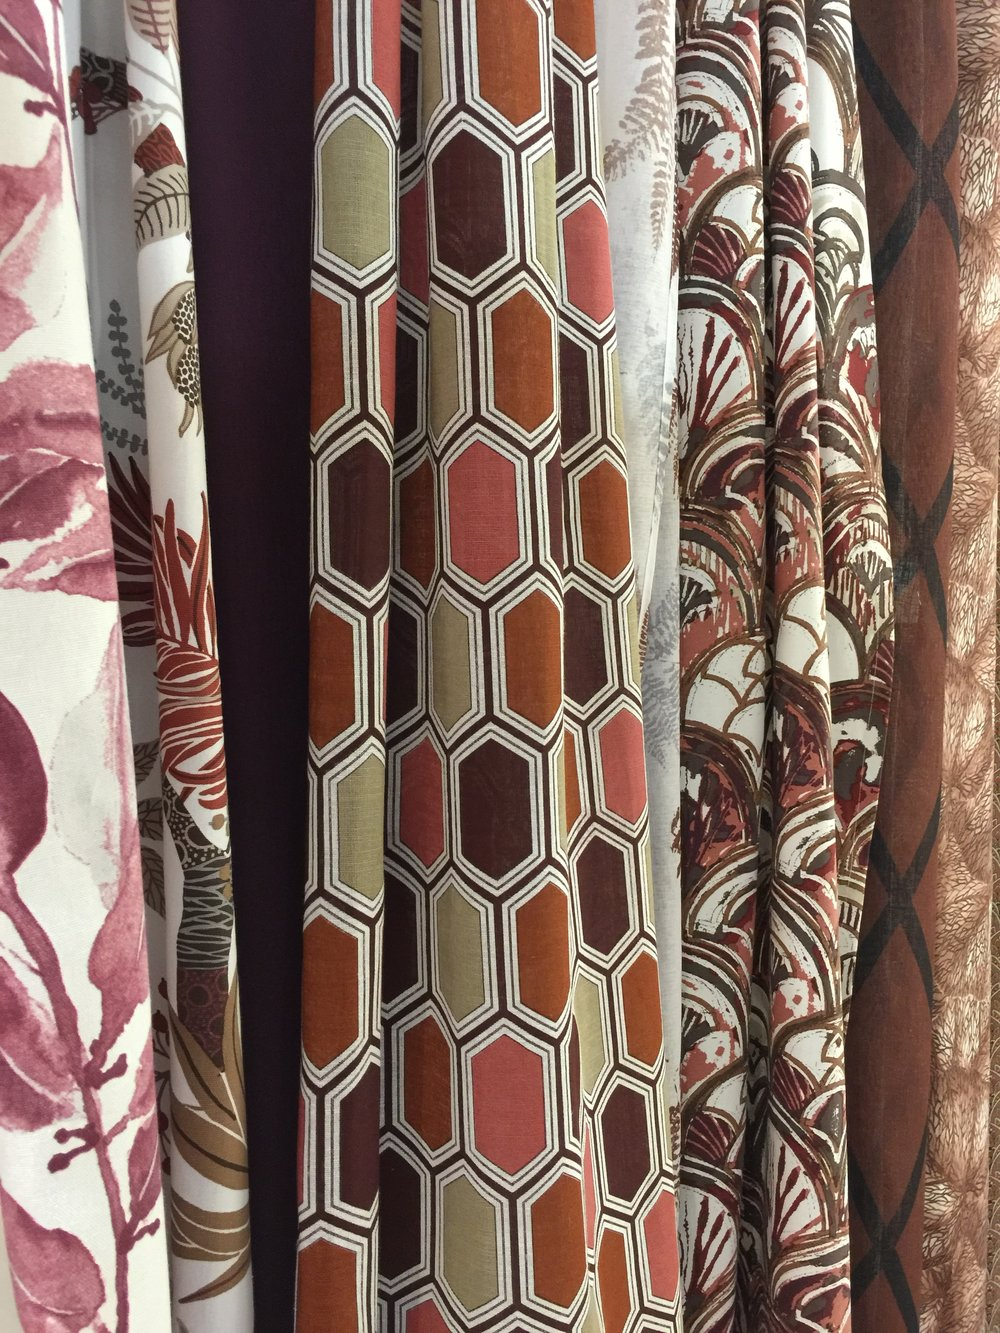 First sighting of a Gemstone curtain, in some really good company too.